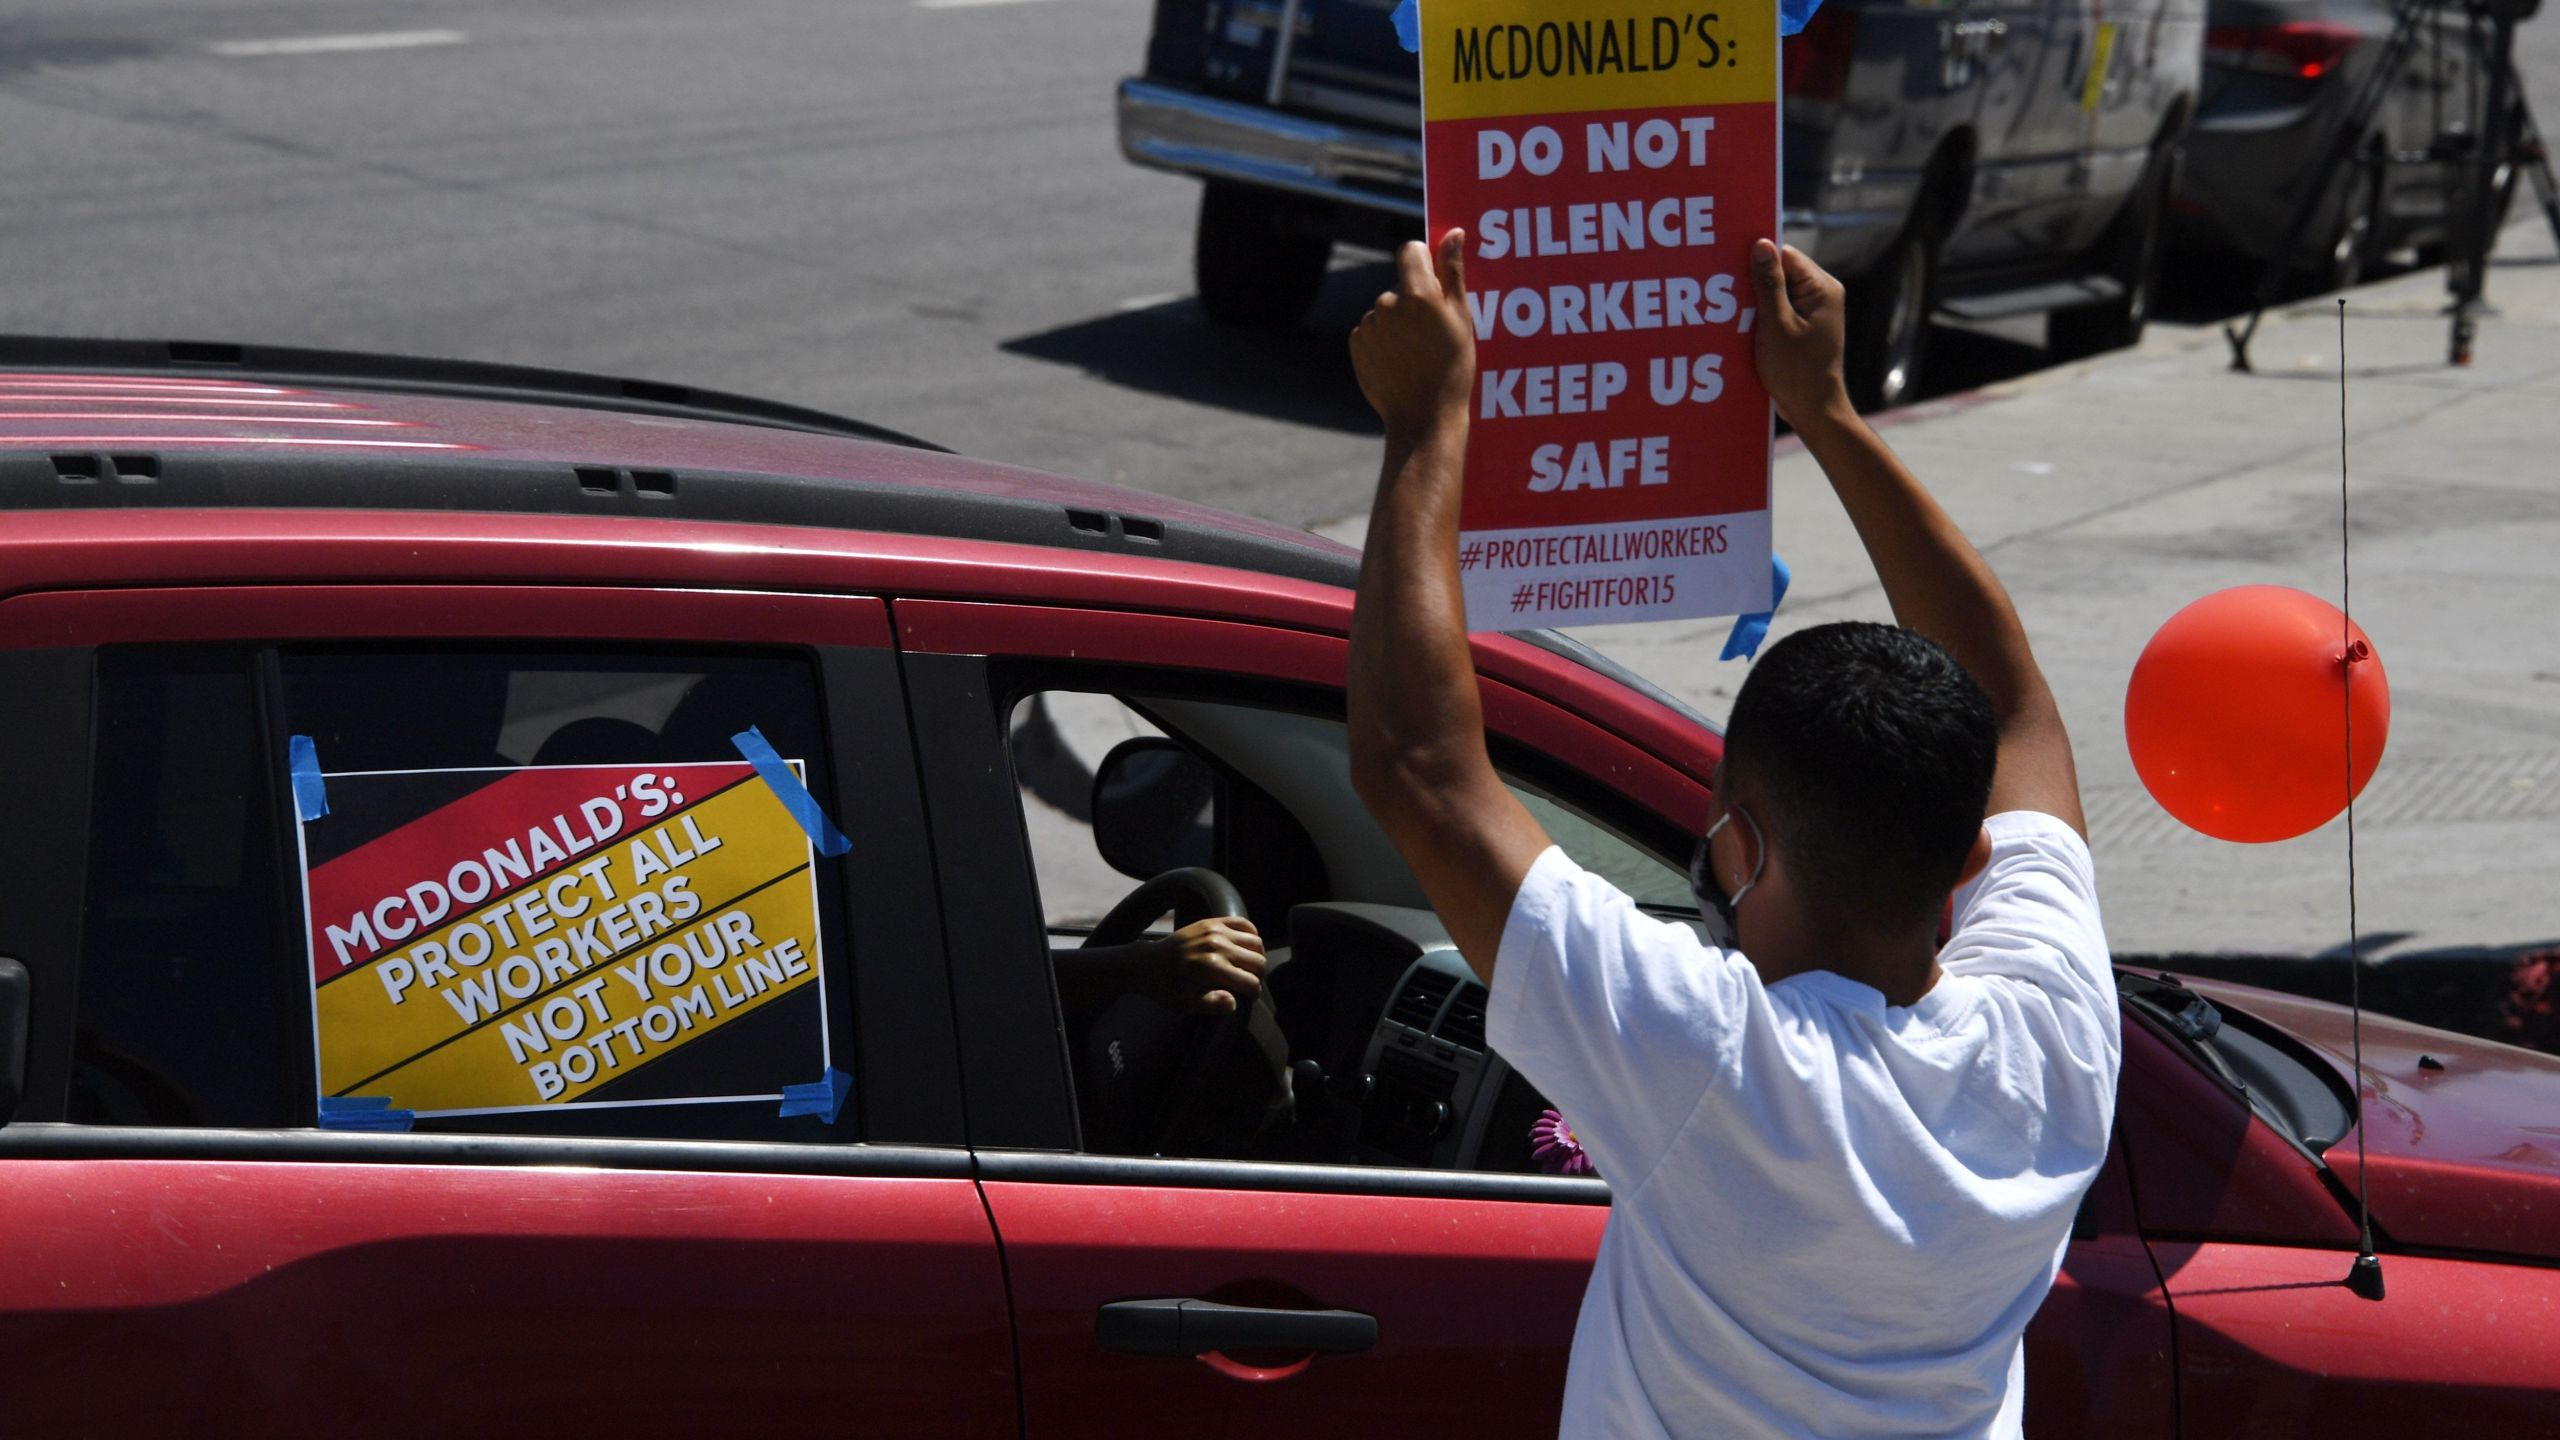 McDonald's workers and their supporters hold signs at a rally to protest what they allege is McDonald's attempts to silence a worker who spoke out about unsafe conditions amid the COVID-19 pandemic, August 7, 2020 outside a McDonald's in Los Angeles. (ROBYN BECK/AFP via Getty Images)